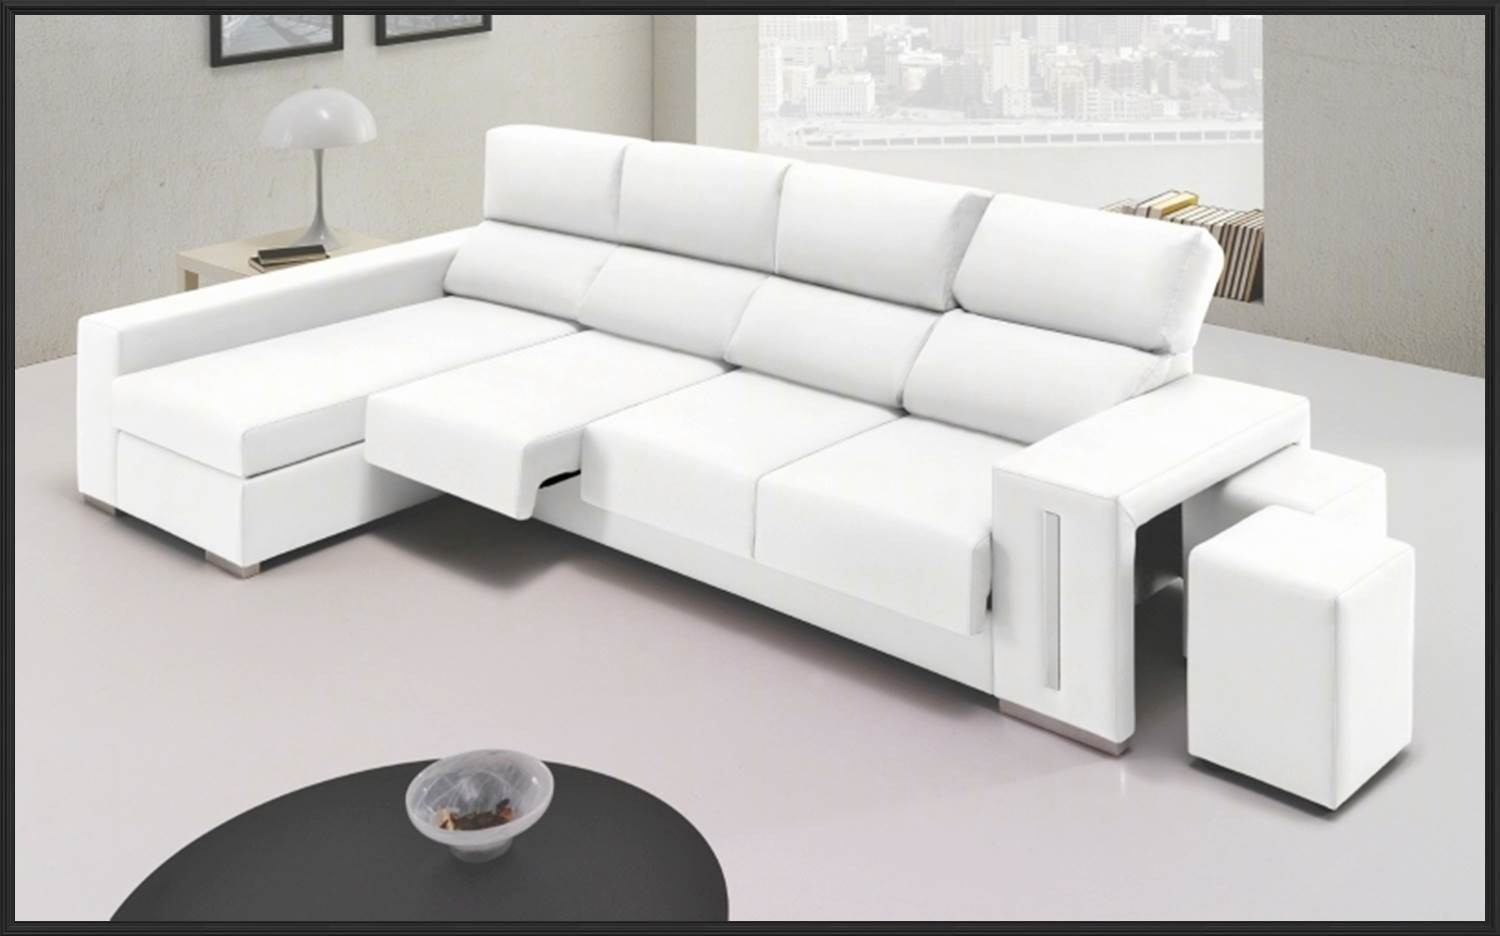 Sofa 3 Plazas Chaise Longue Mejor sofa 4 Plazas Chaise Longue Of 37  atractivo sofa 3 Plazas Chaise Longue